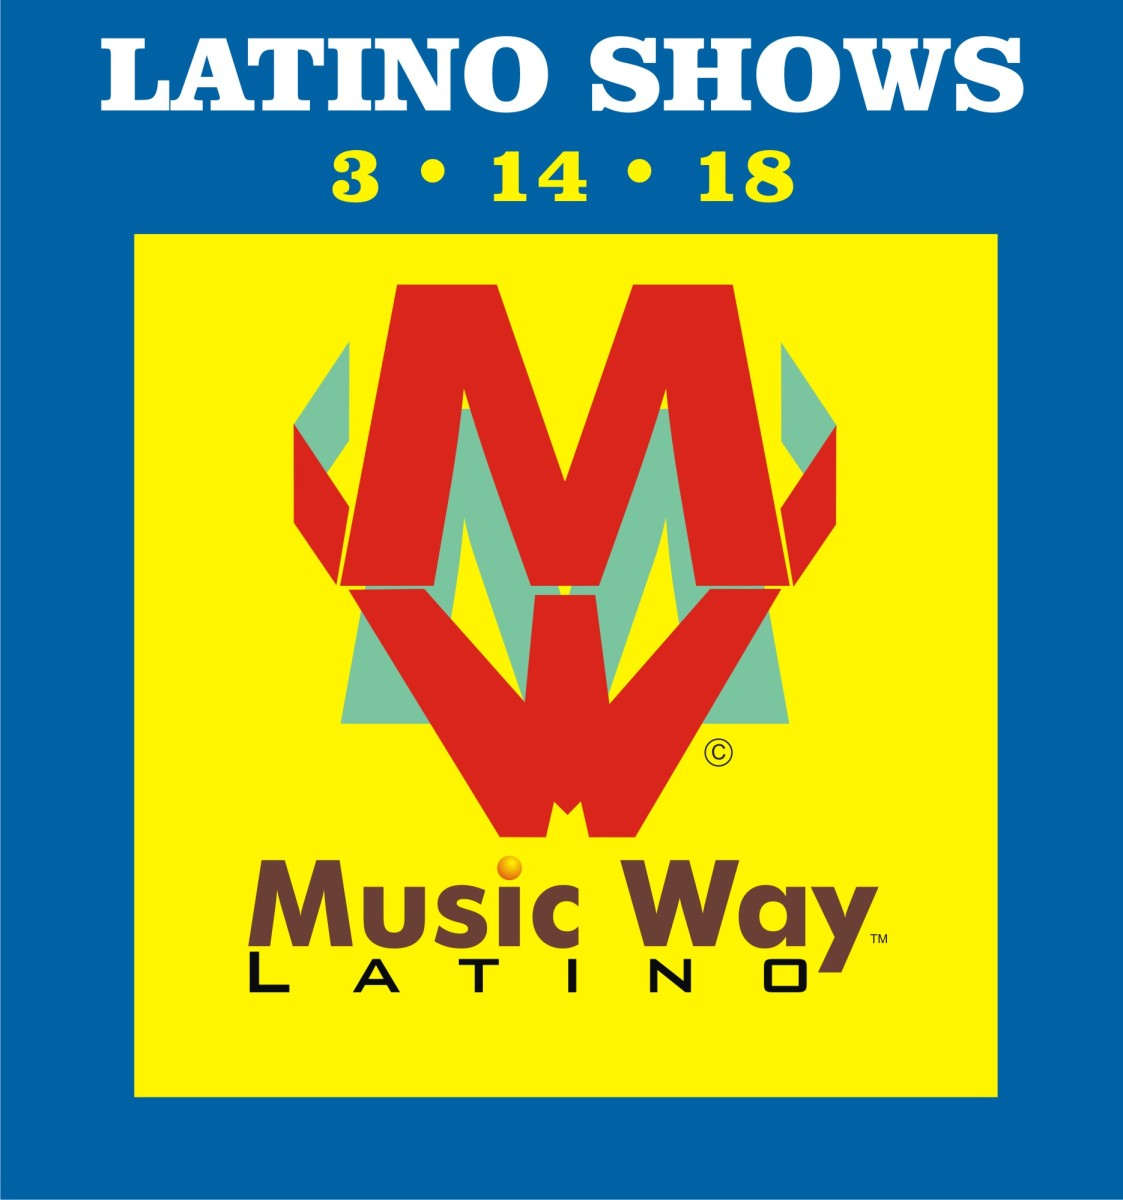 SXSW – Wednesday 14 ► Latino Shows